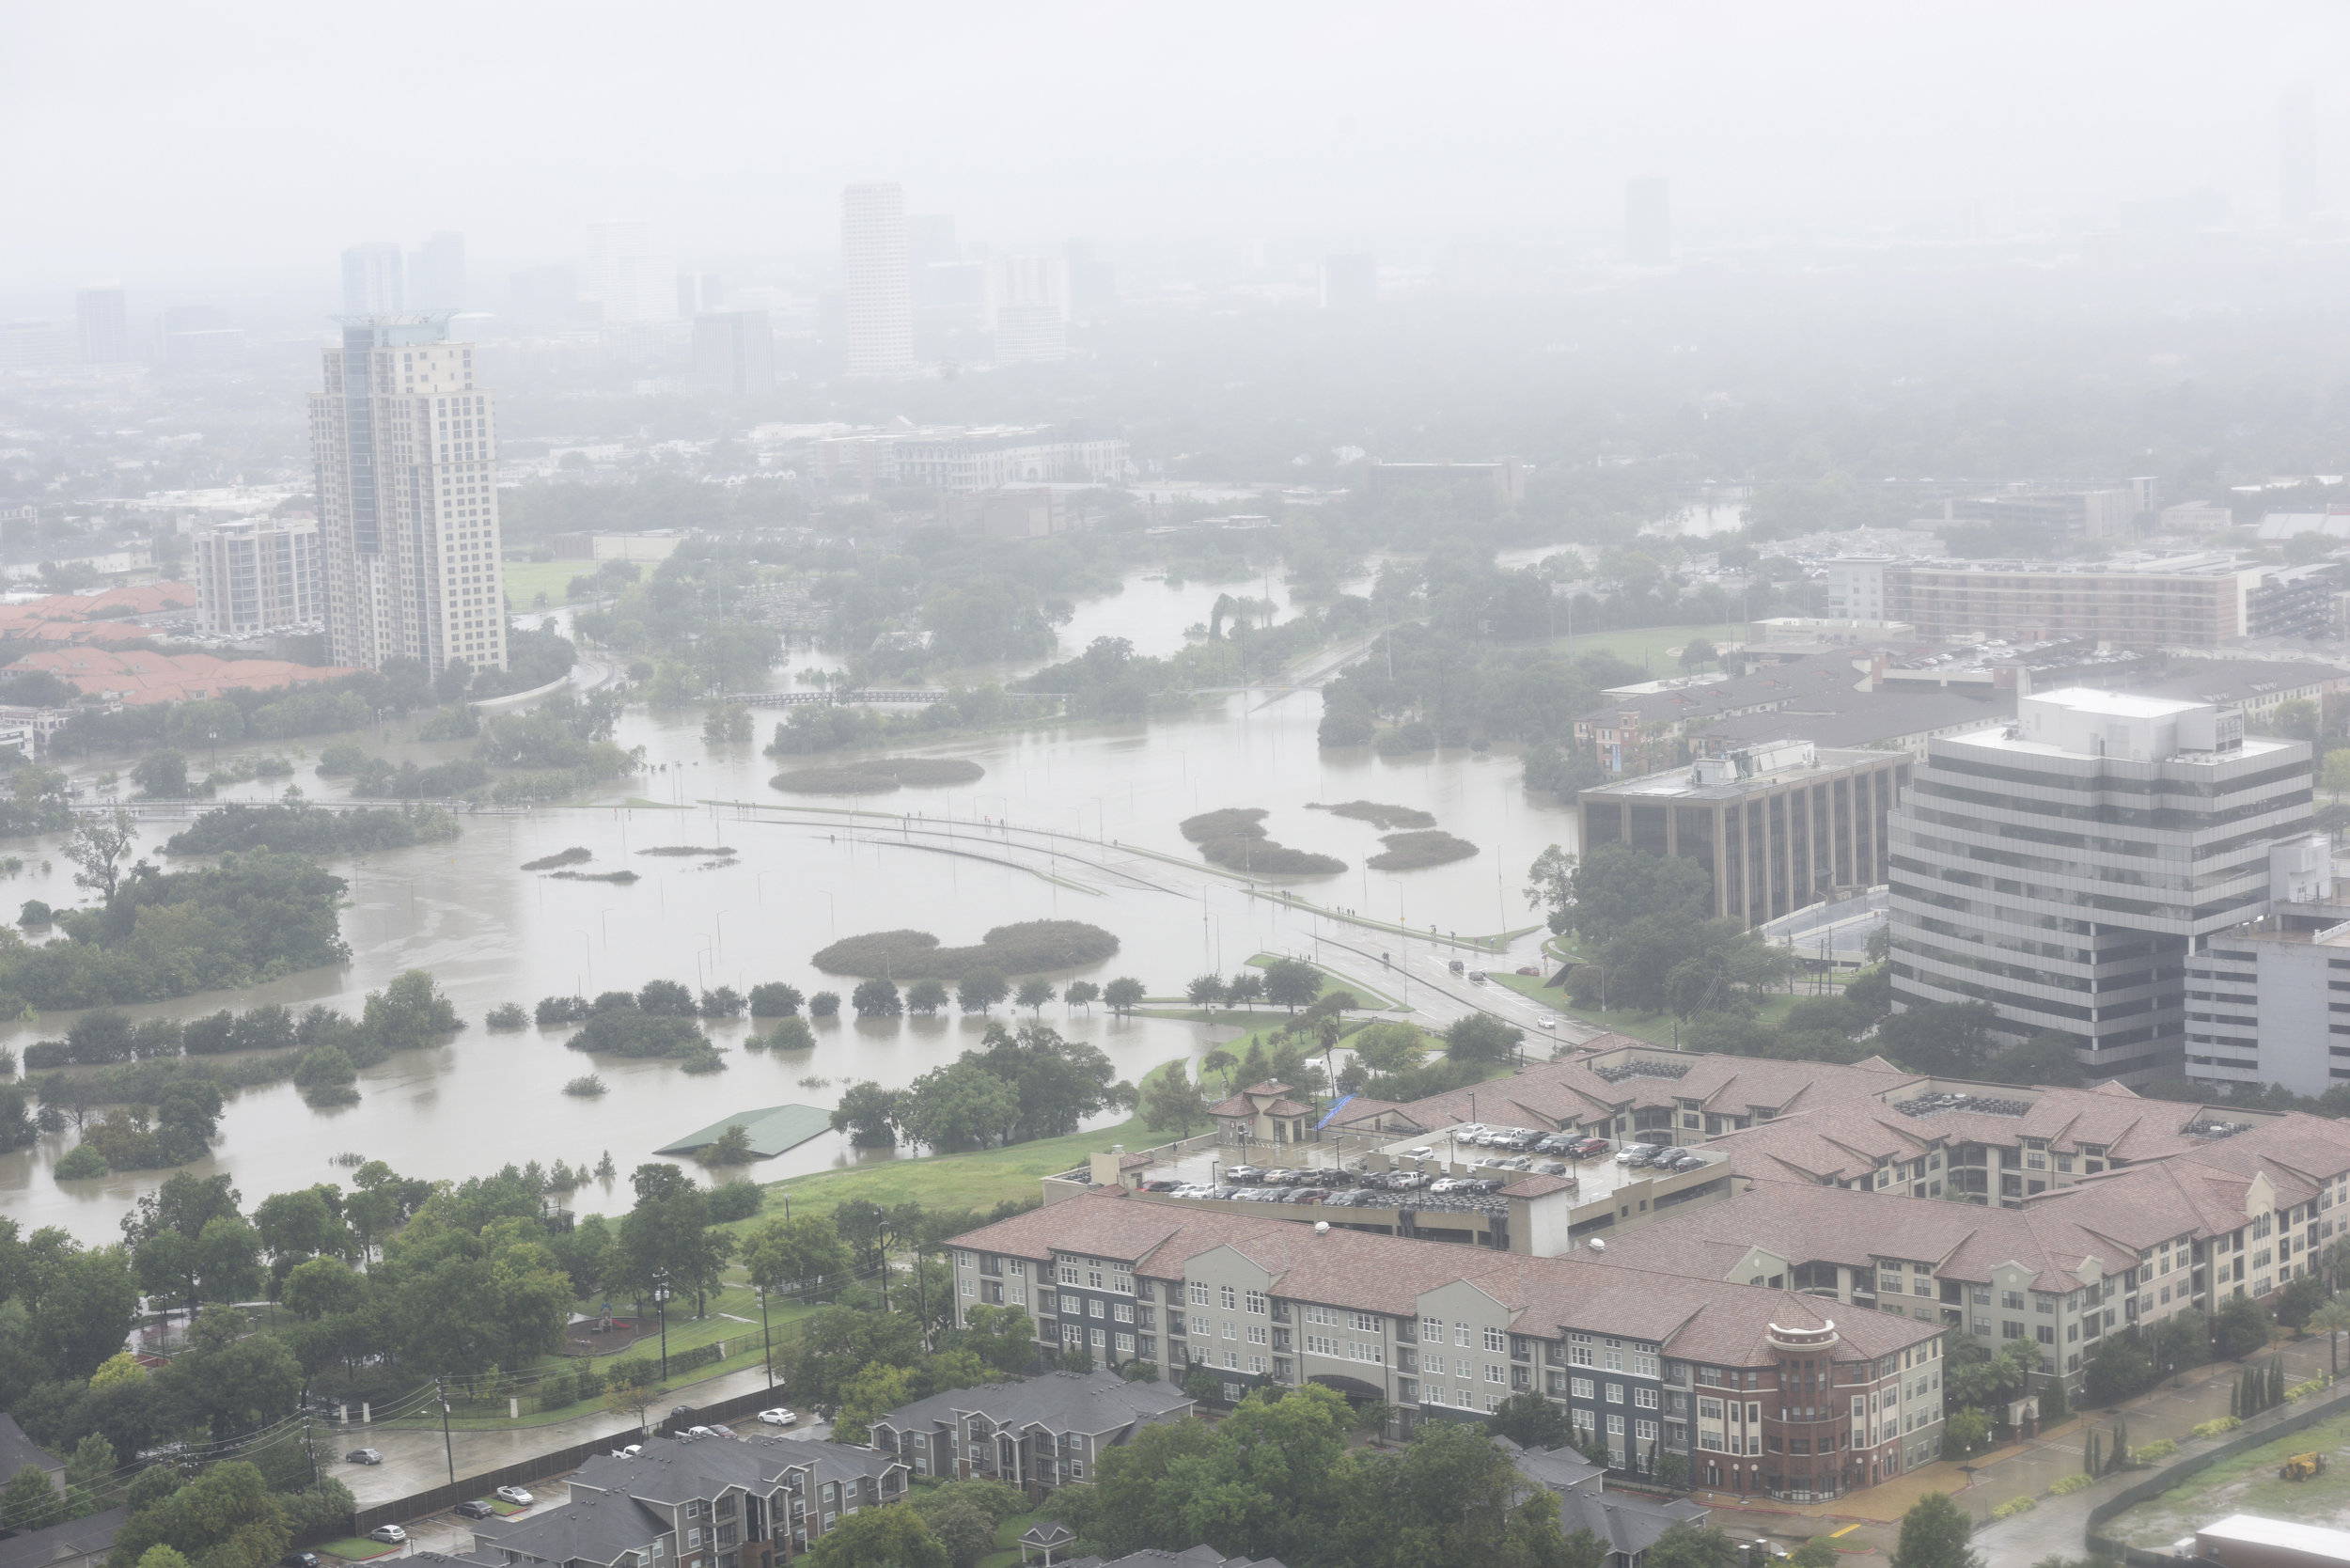 harvey-houston-shutterstock_704713648.jpg